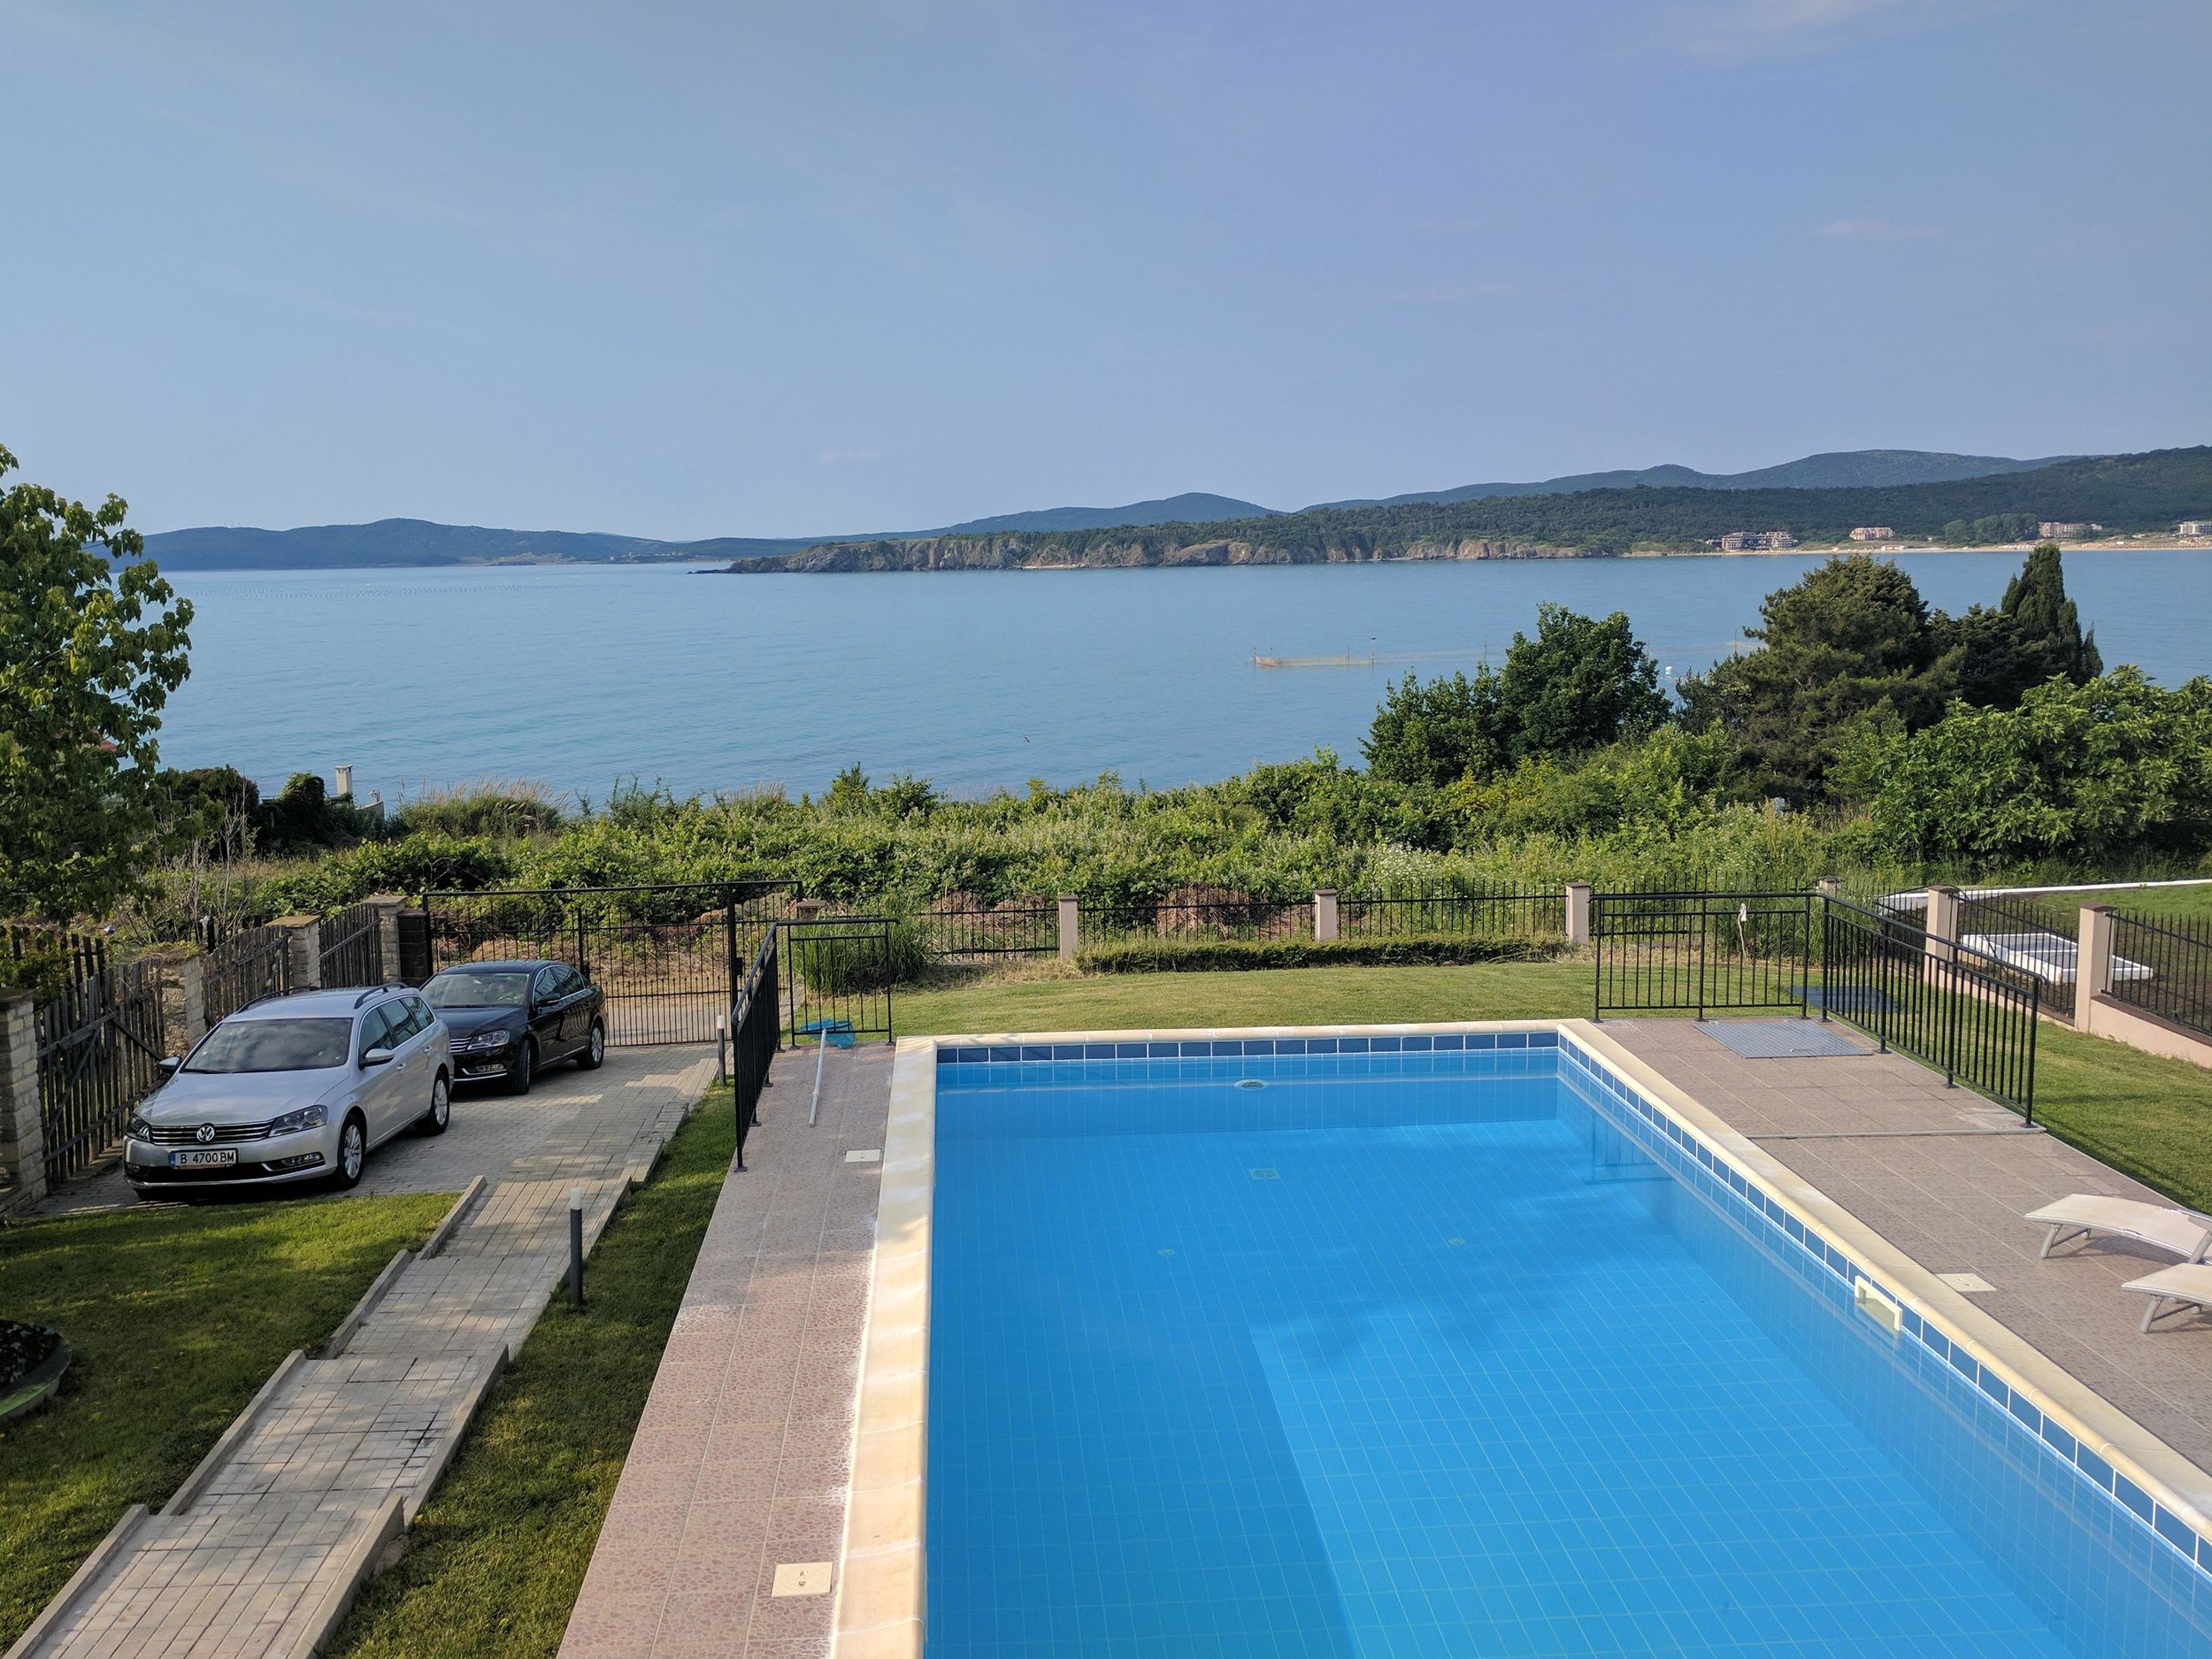 It was tough to leave this view from our villa in Bulgaria behind, but coming to Valencia was a nice consolation